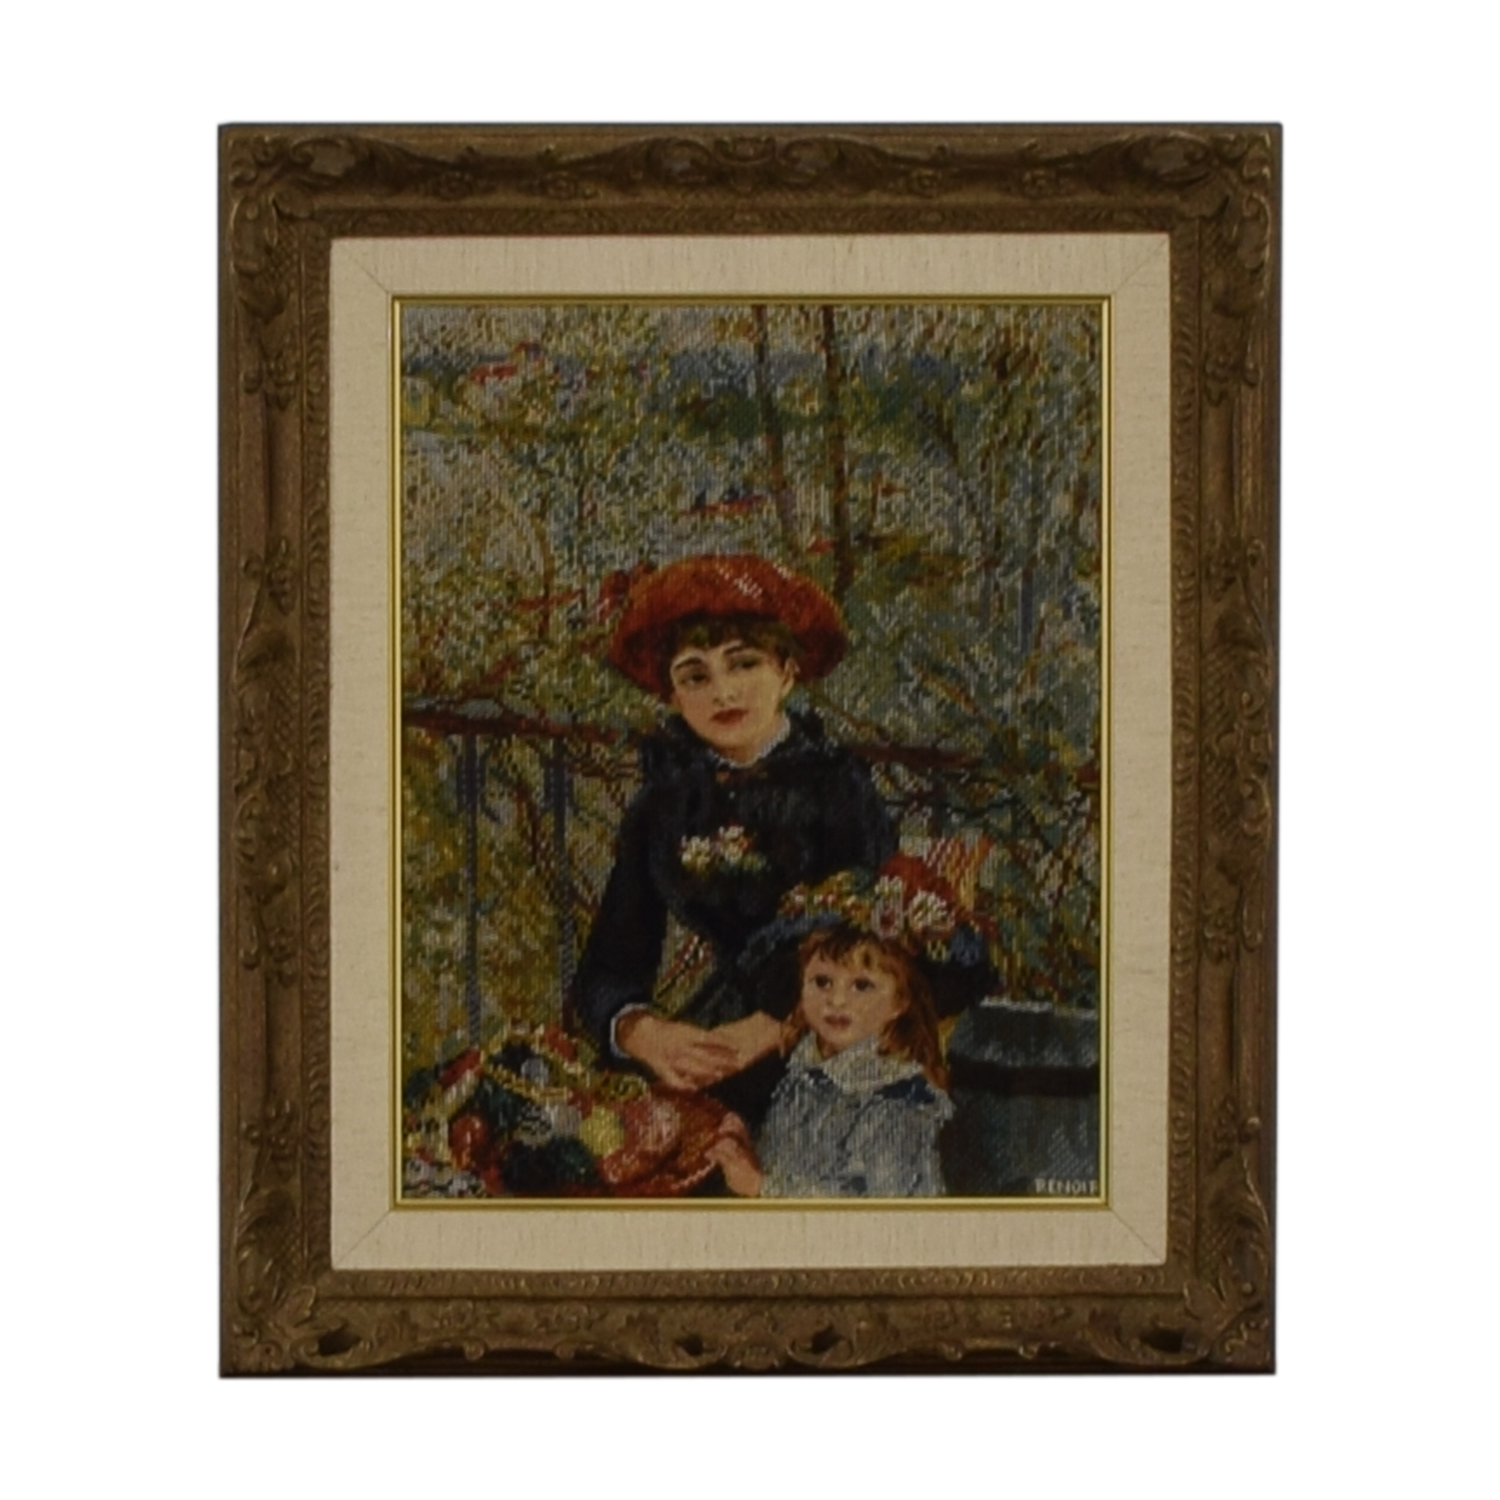 buy Renoir Renoir Two Sisters on the Balcony Gold Framed Needlepoint online